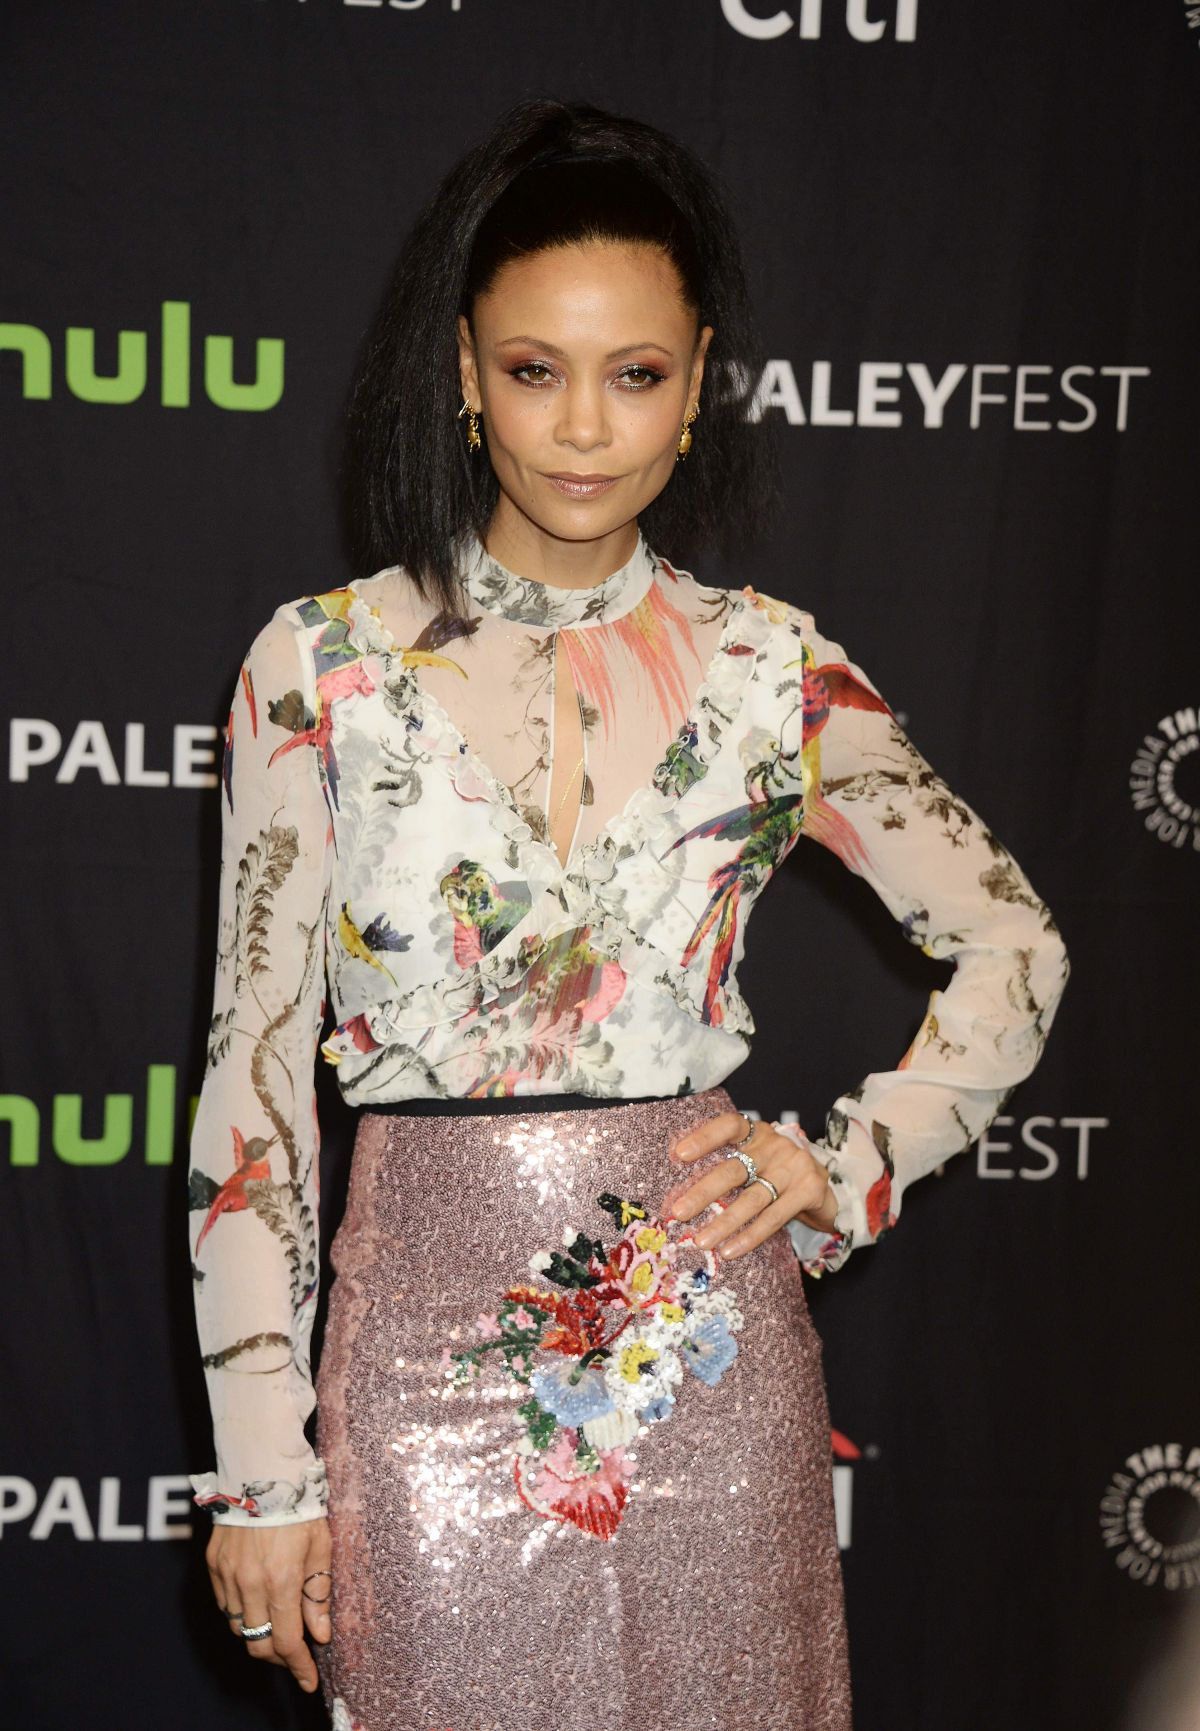 THANDIE NEWTON at Westworld Screening at Paleyfest in Los Angeles 03/25/2017